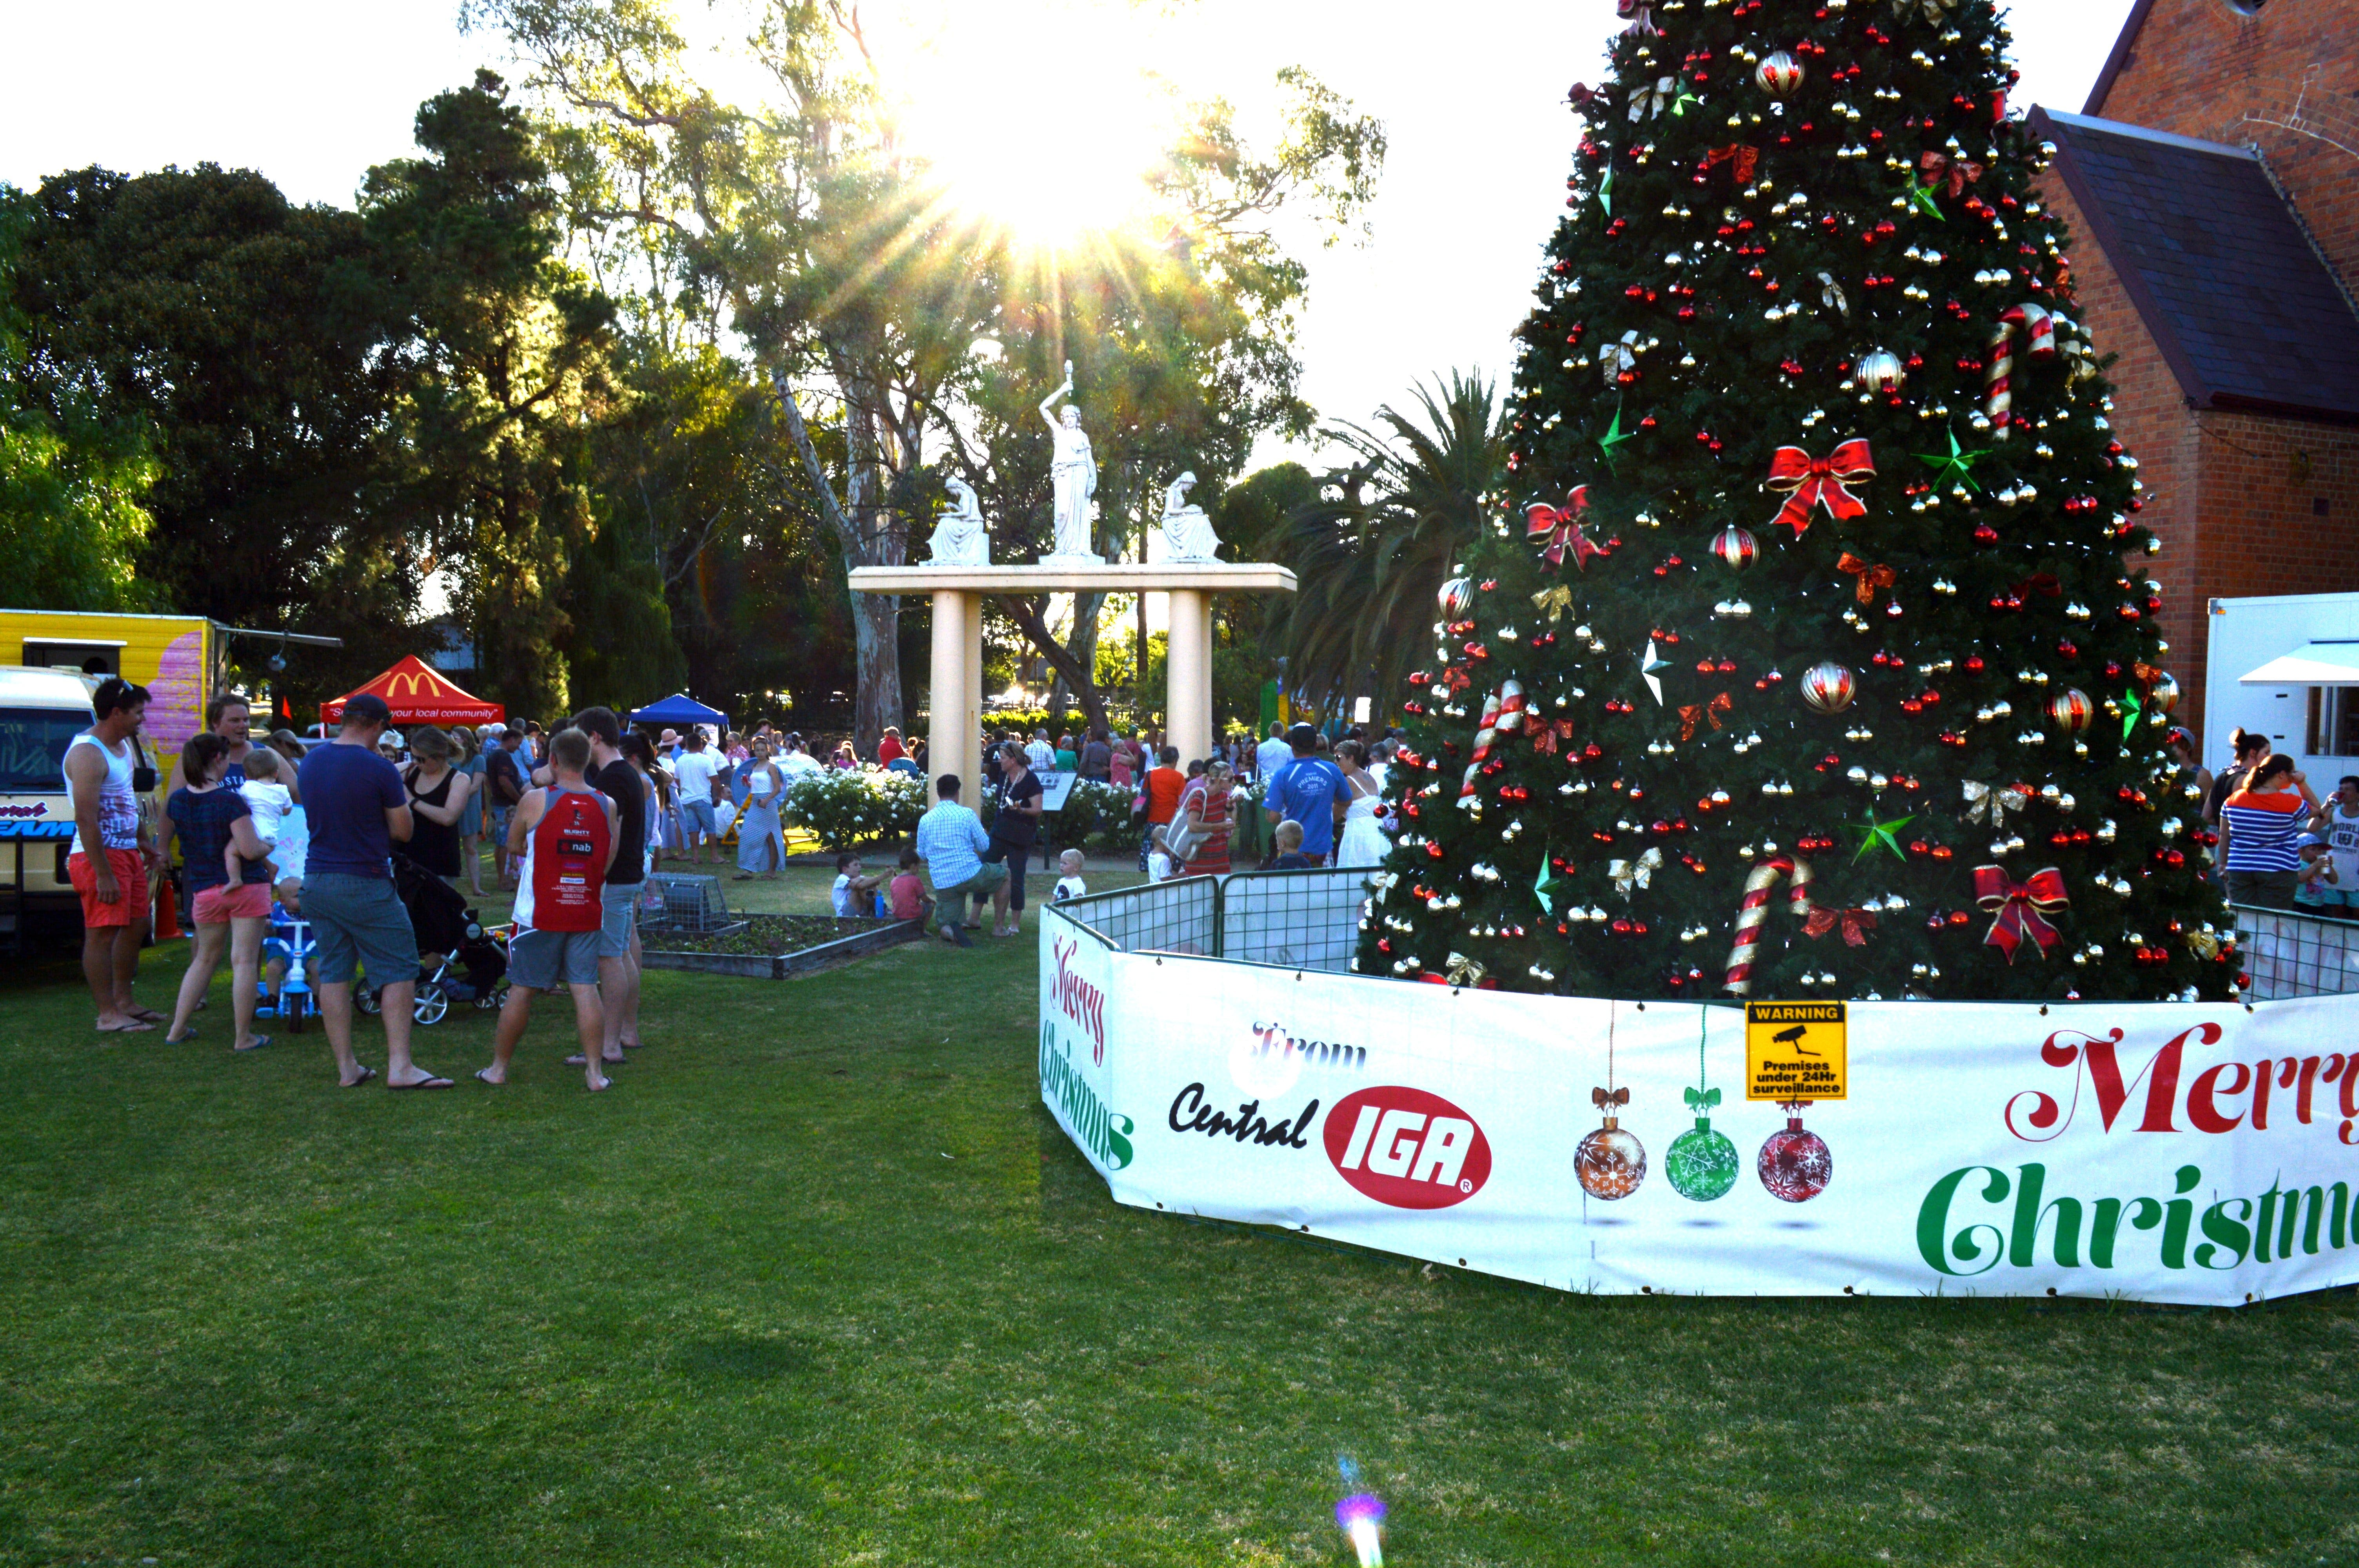 Community Christmas Party and Carols by Candlelight - Accommodation Batemans Bay